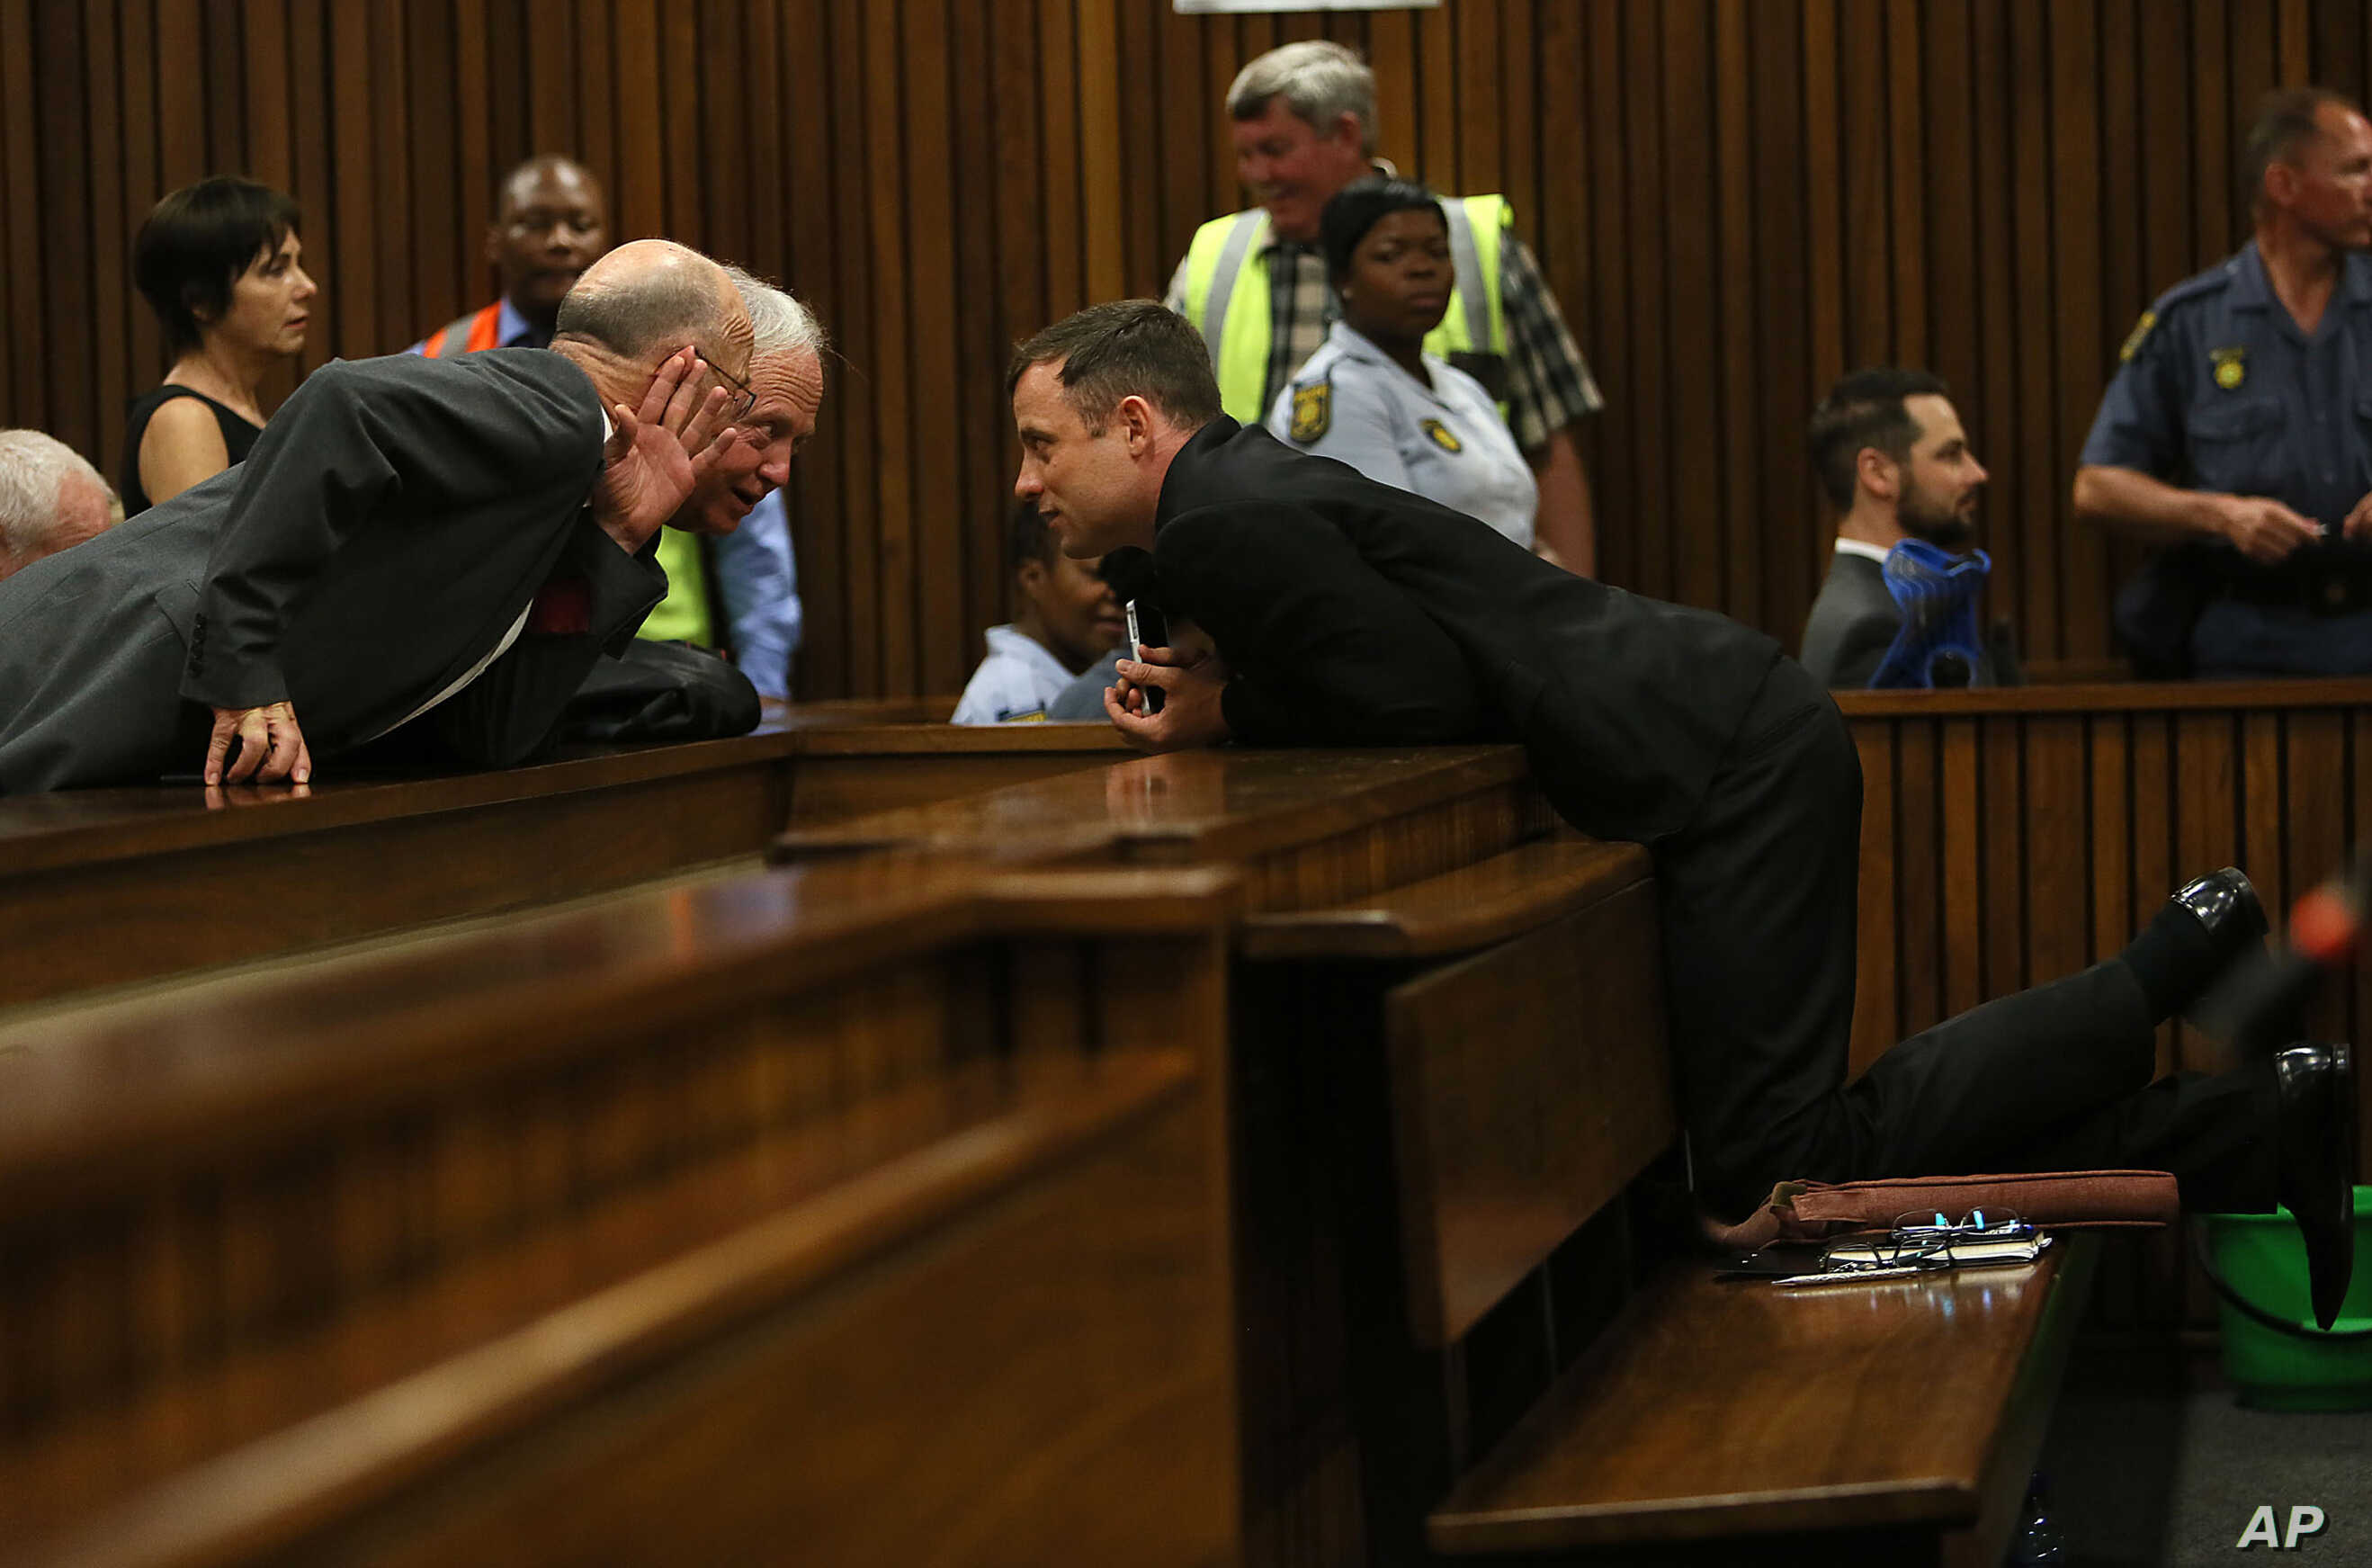 Oscar Pistorius, right, speaks with his uncle Arnold Pistorius, left, as he attends the fourth day of sentencing proceedings at the high court in Pretoria, South Africa, Oct. 16, 2014.